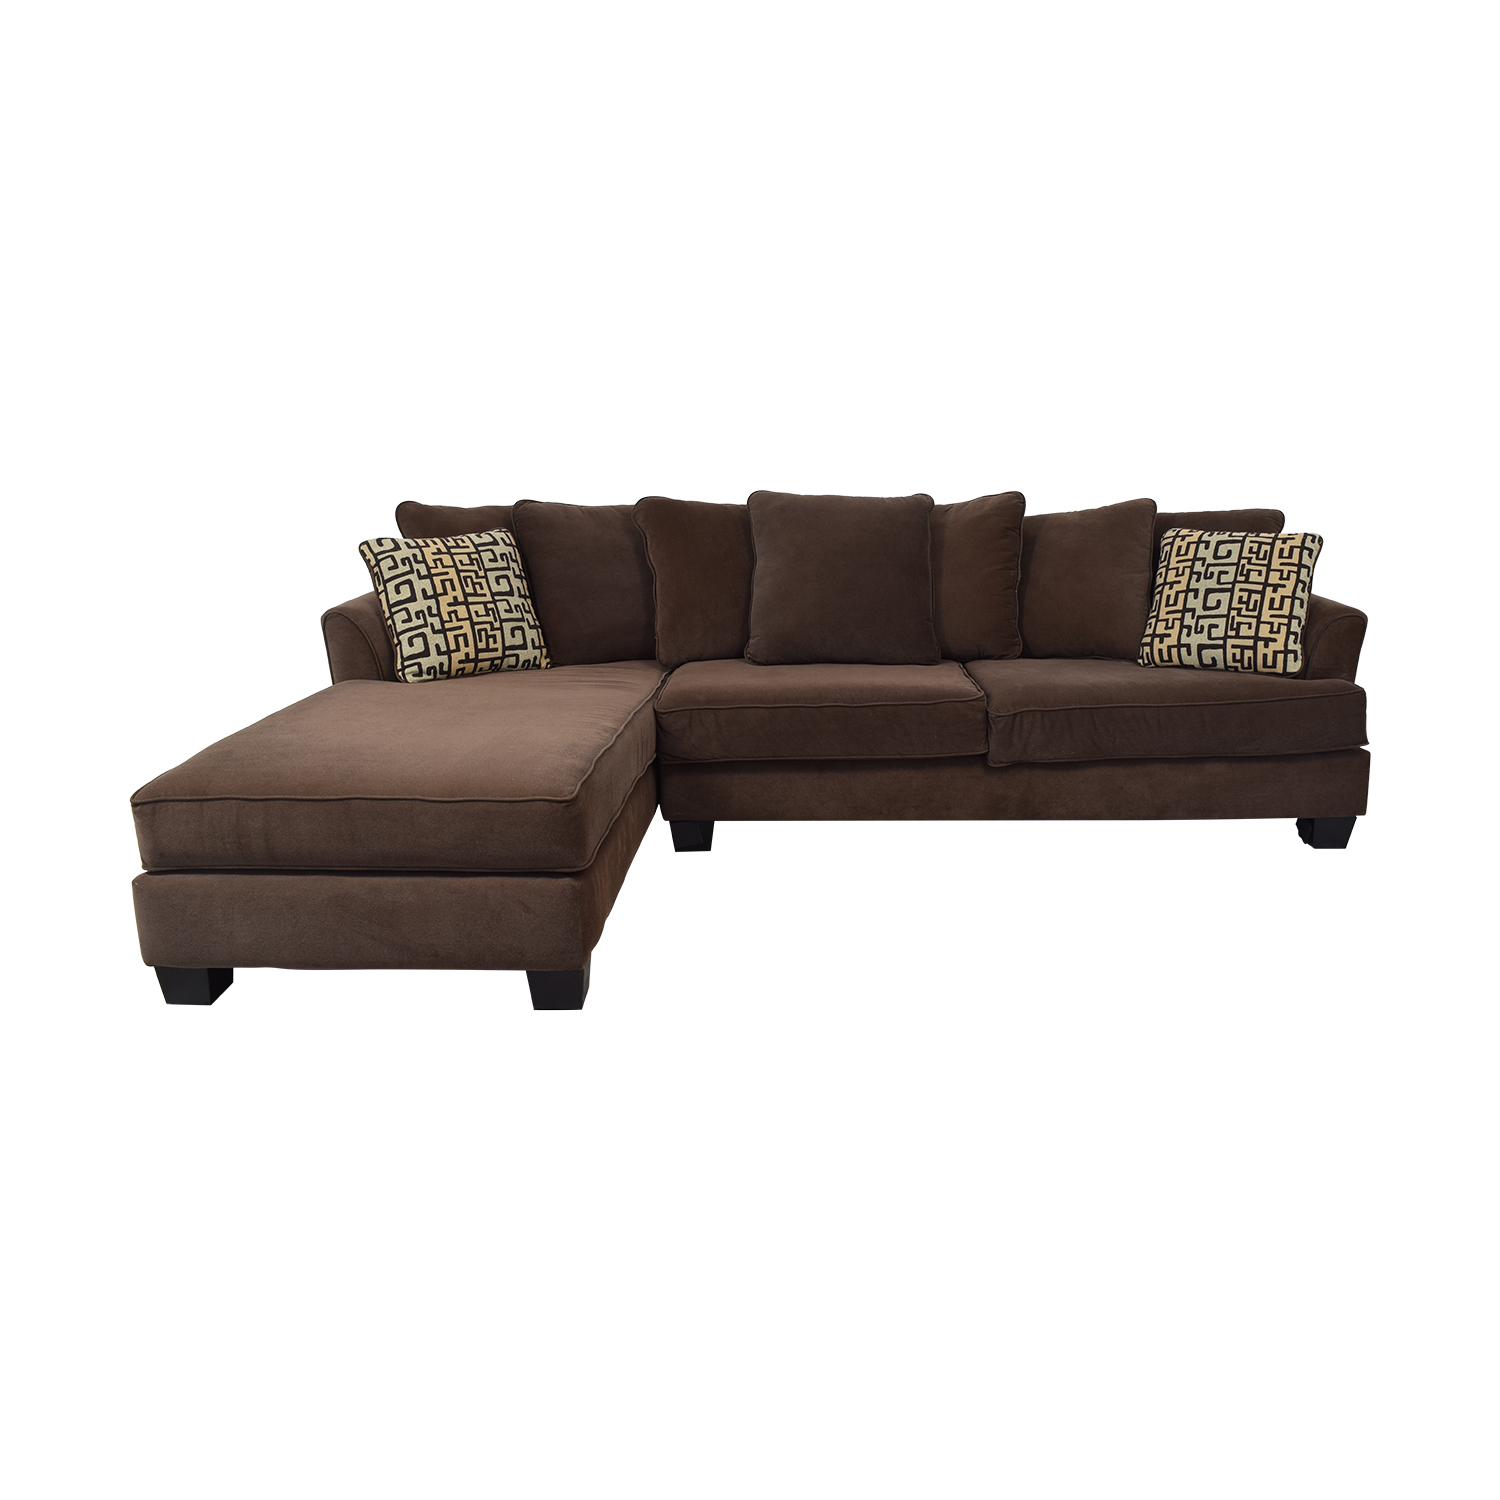 76 Off Raymour Flanigan Two Piece Sectional Microfiber Sofa Sofas